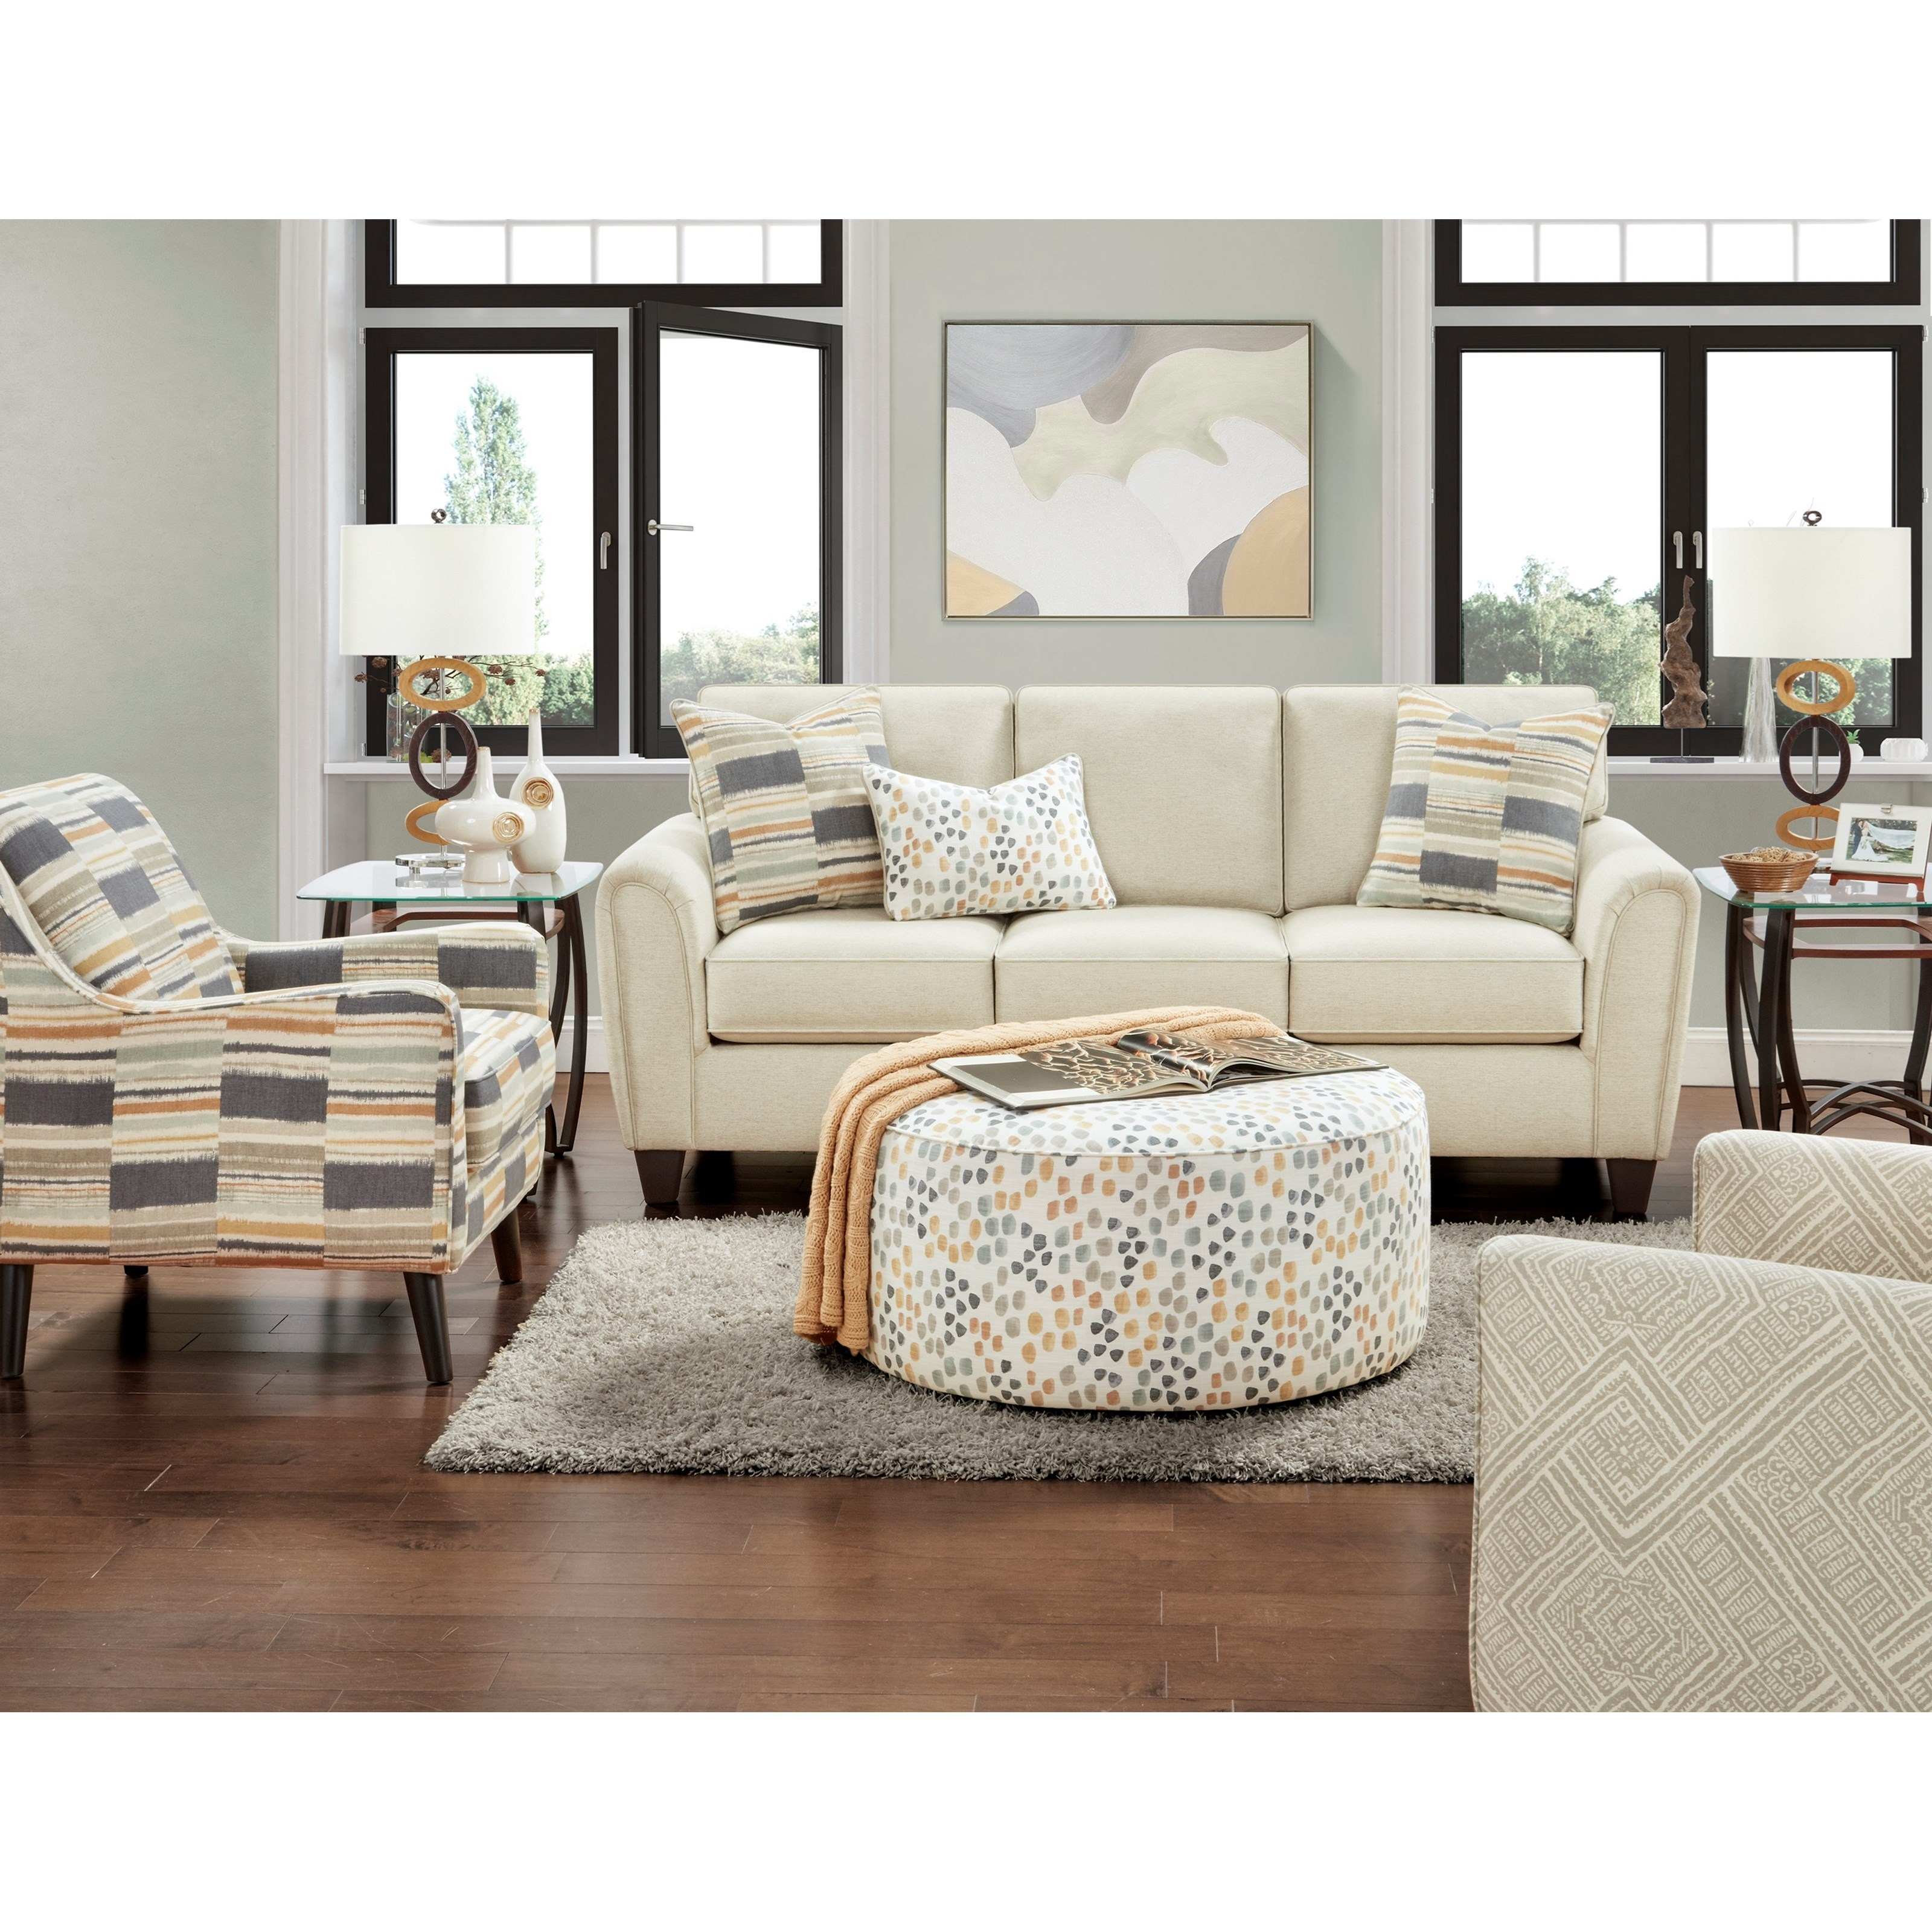 49-00 Living Room Group by Fusion Furniture at Furniture Superstore - Rochester, MN